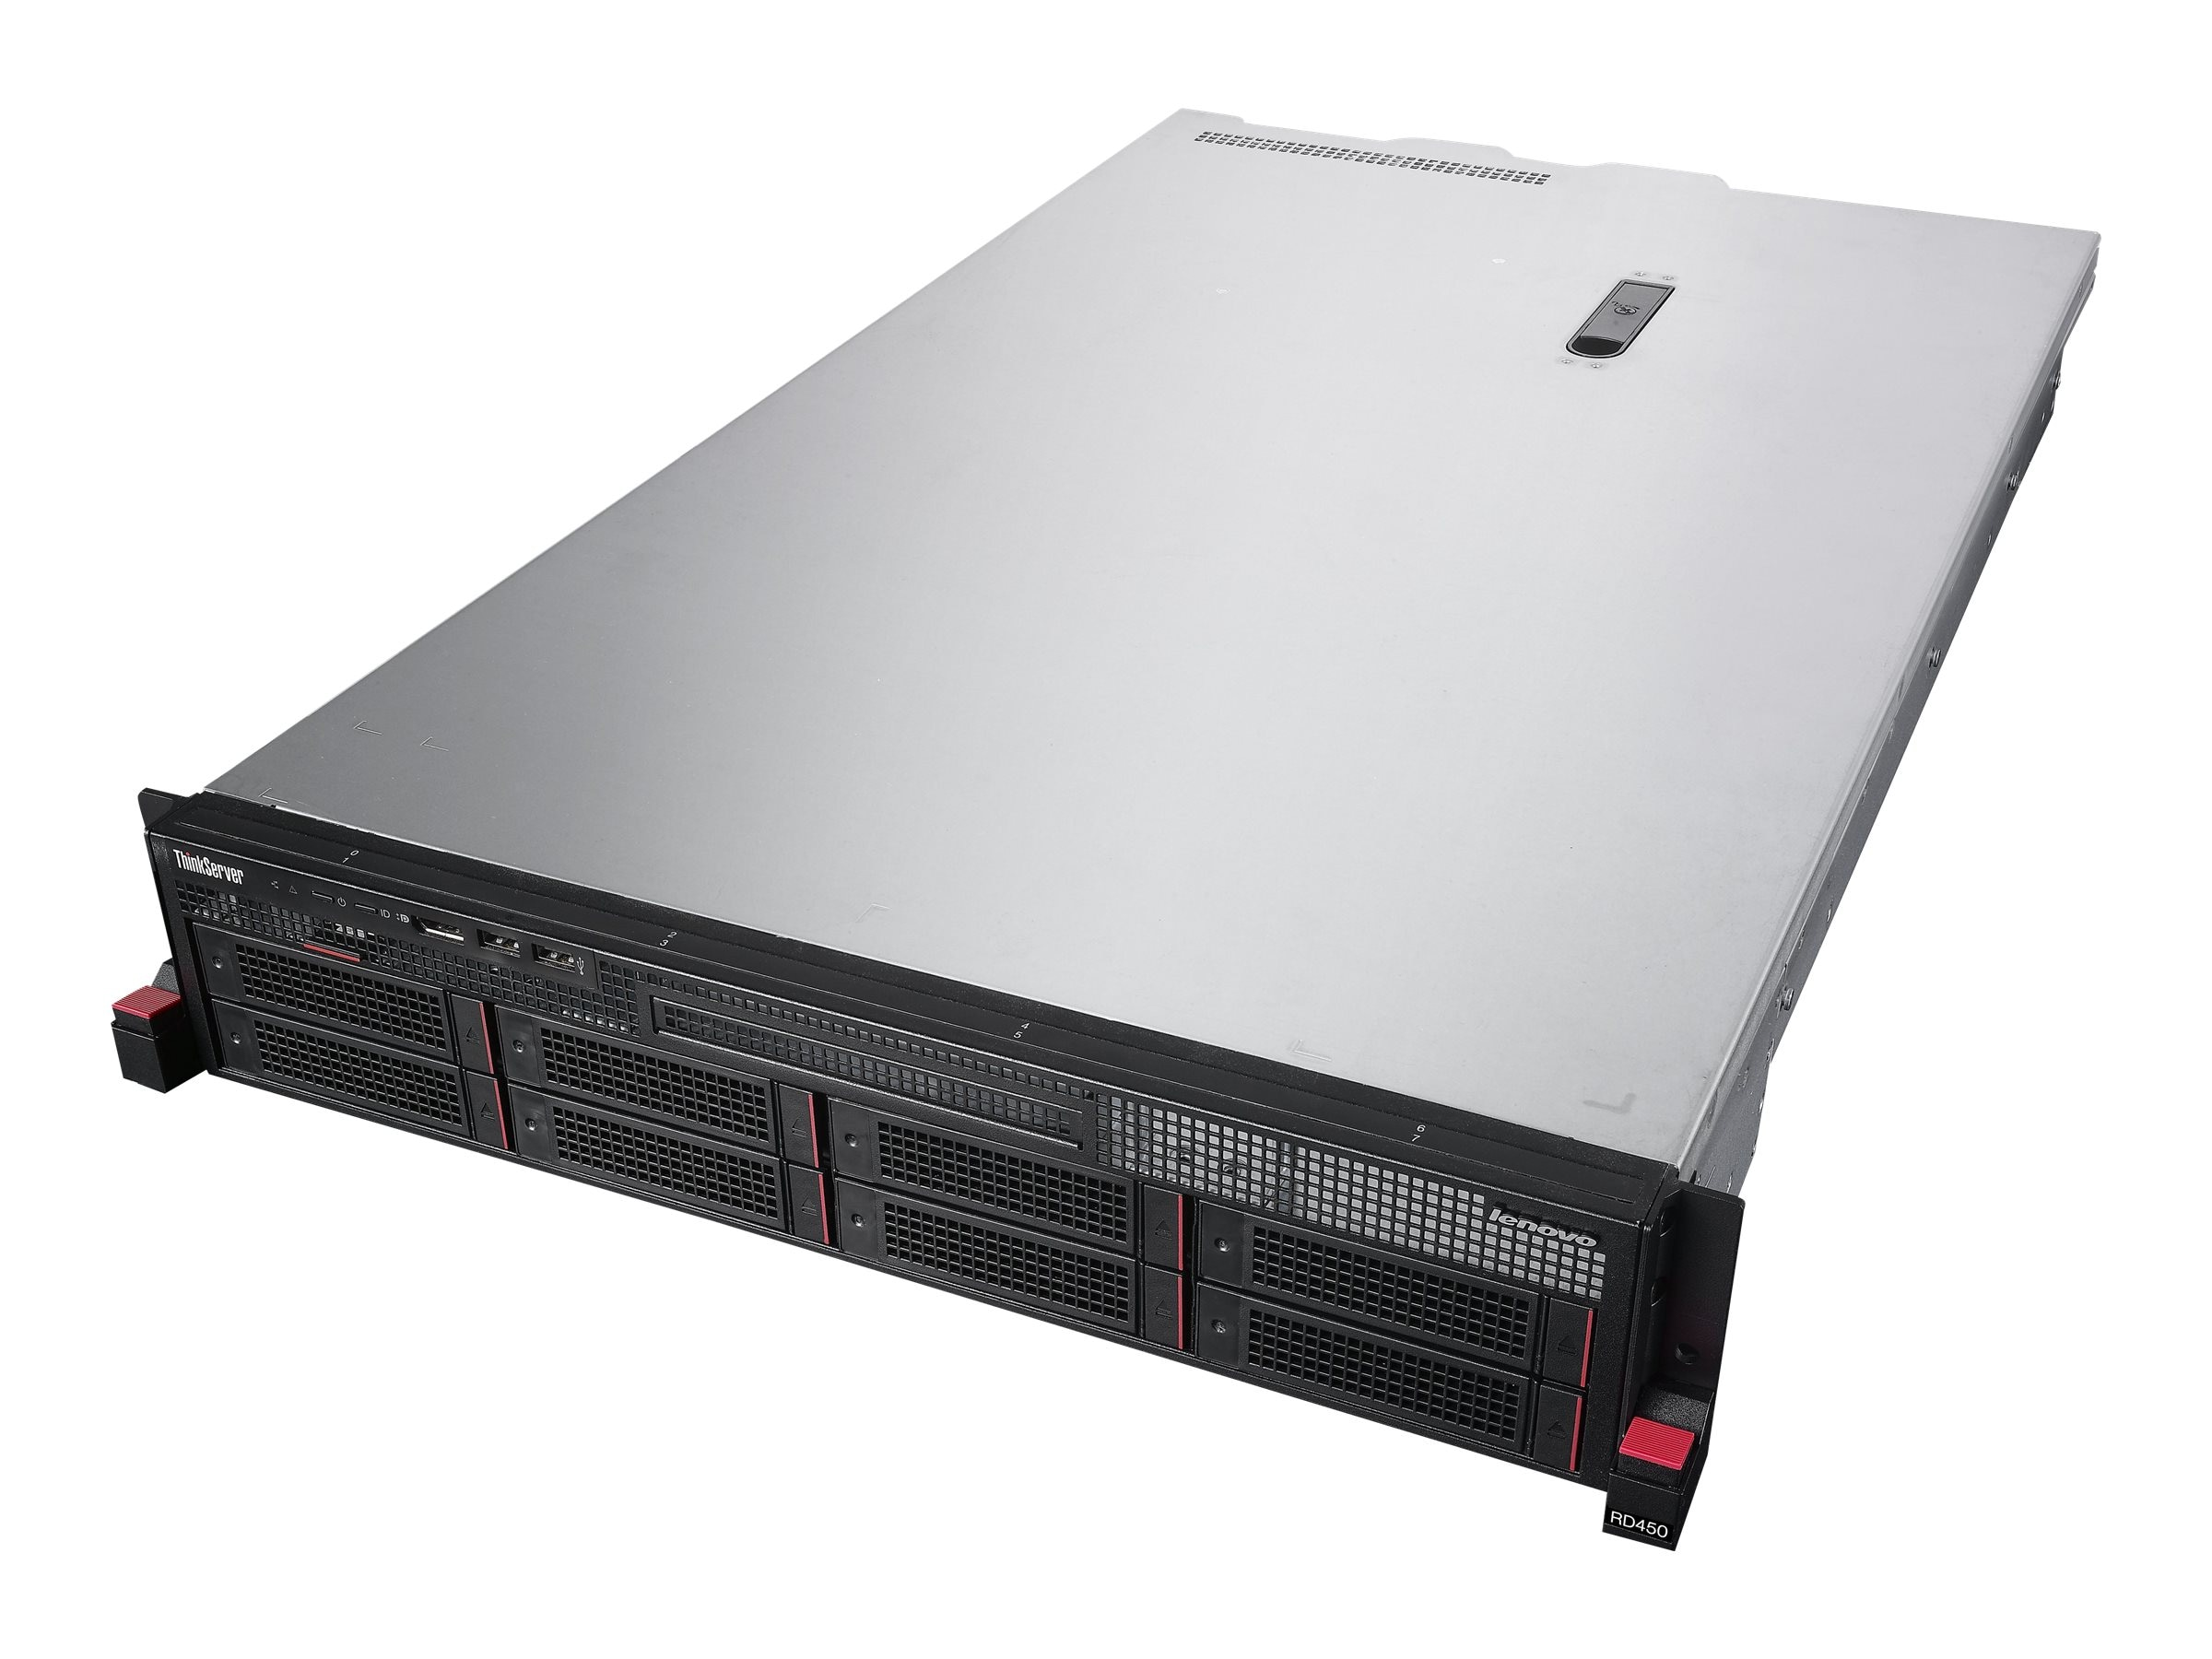 Lenovo TopSeller ThinkServer RD450 Intel 1.6GHz Xeon, 70DC001KUX, 18339205, Servers